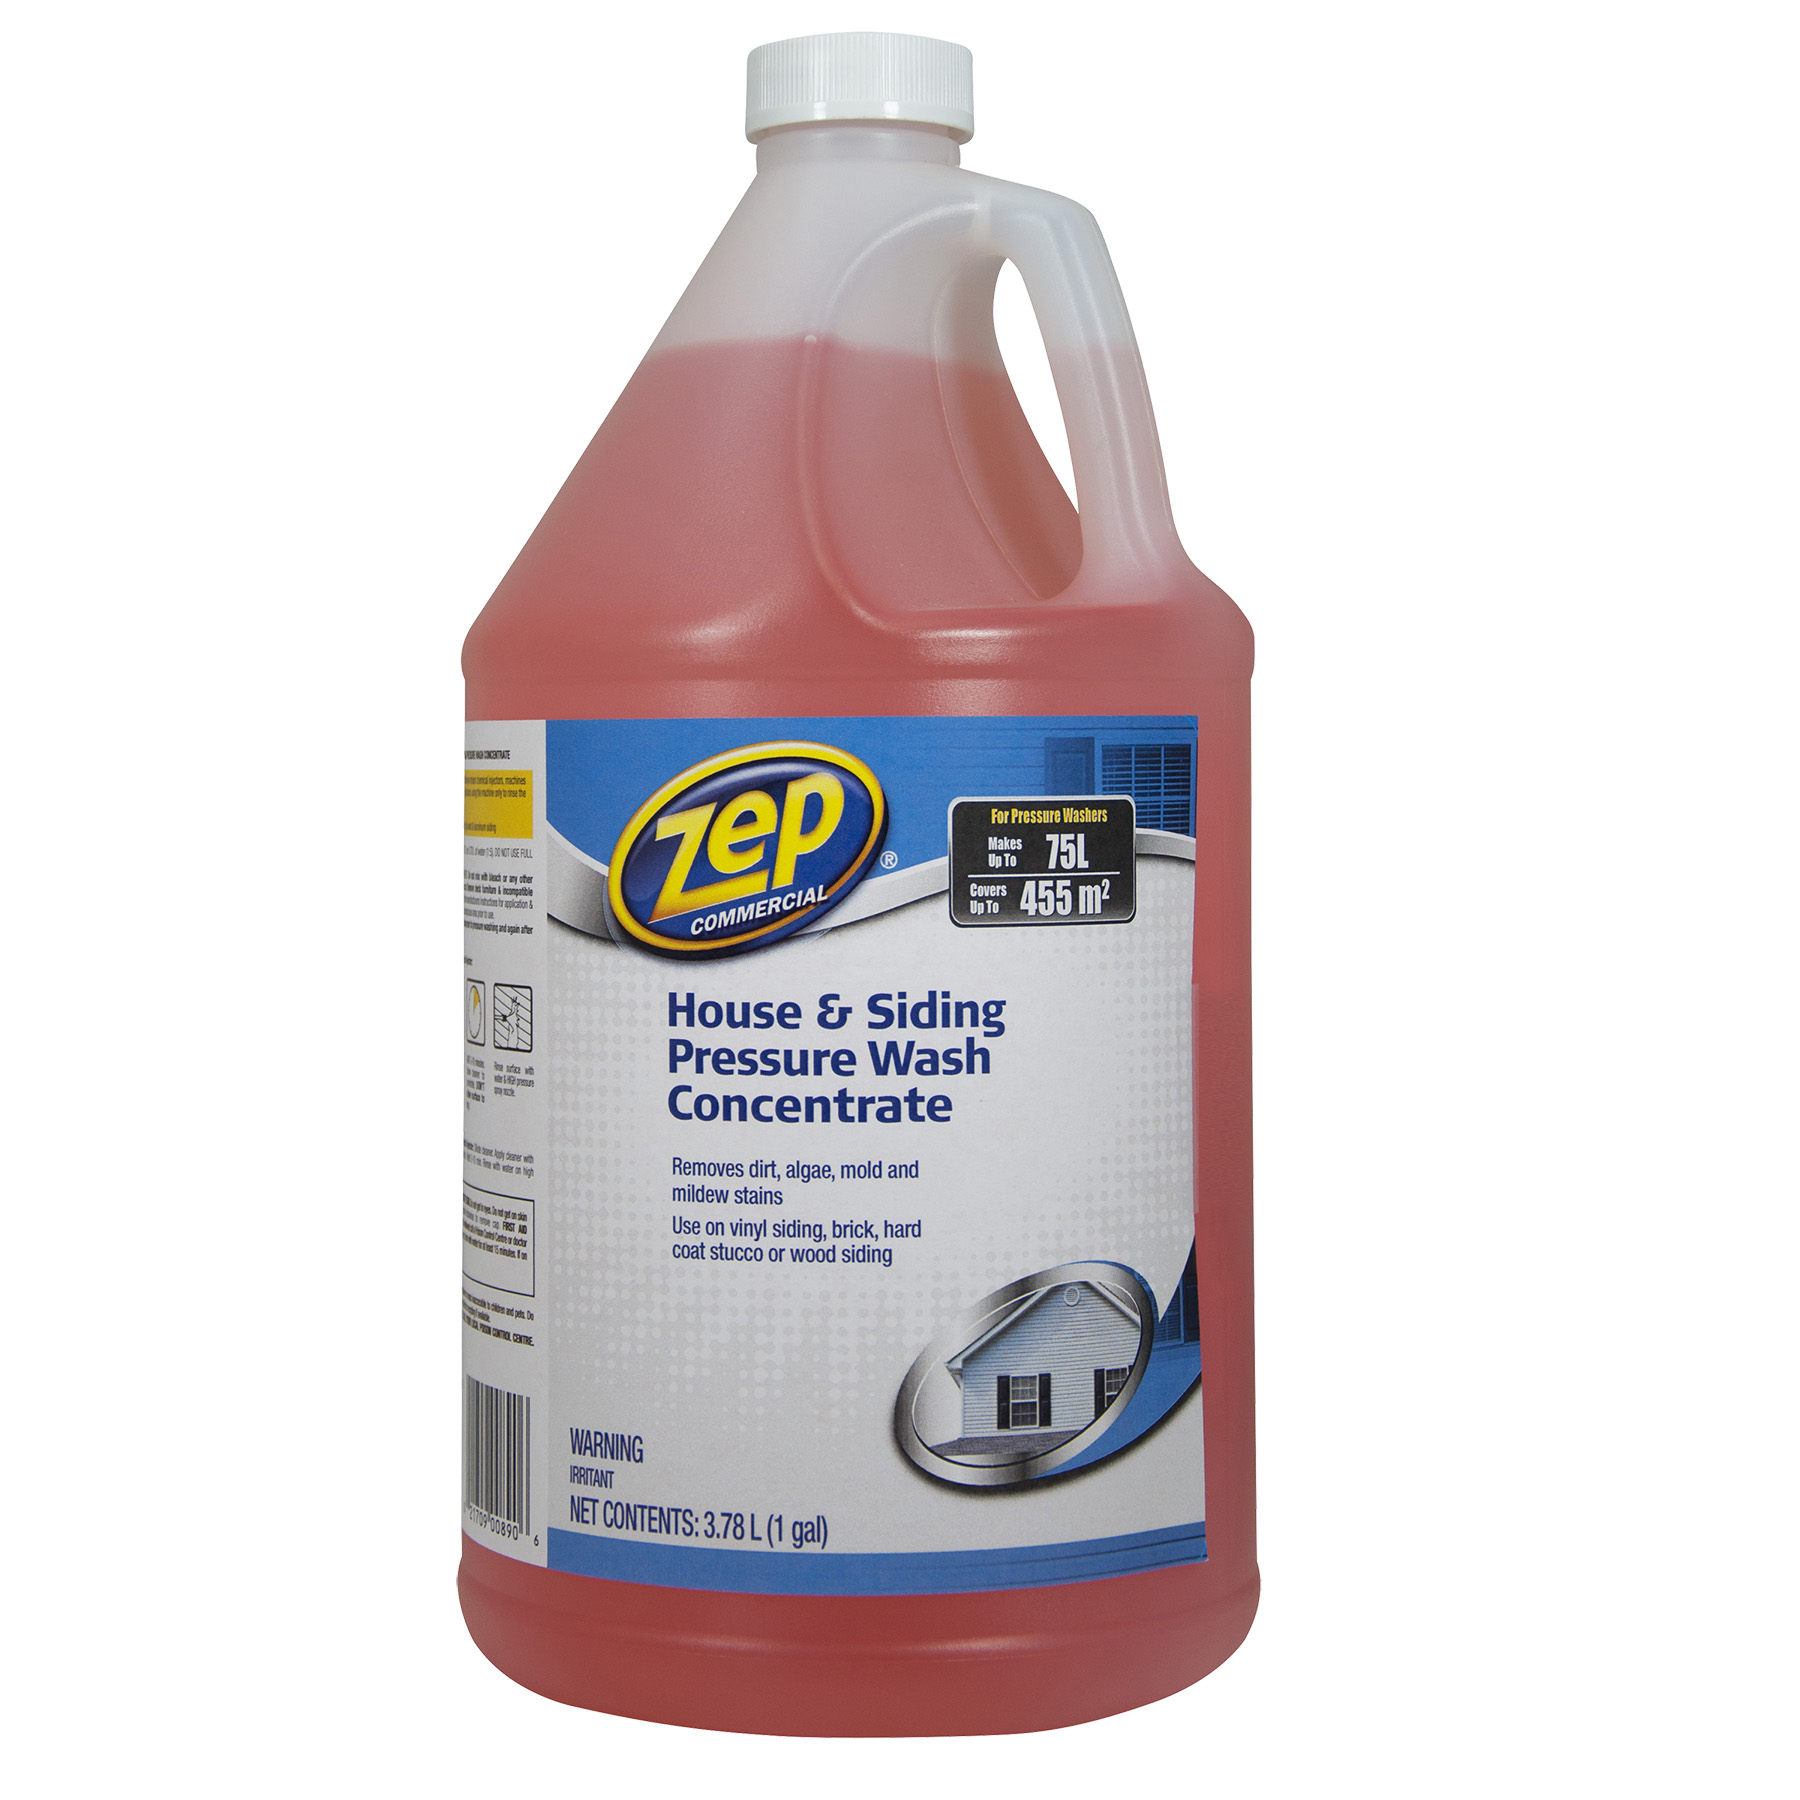 Zep House Amp Siding Pressure Wash Concentrate 1 Gal